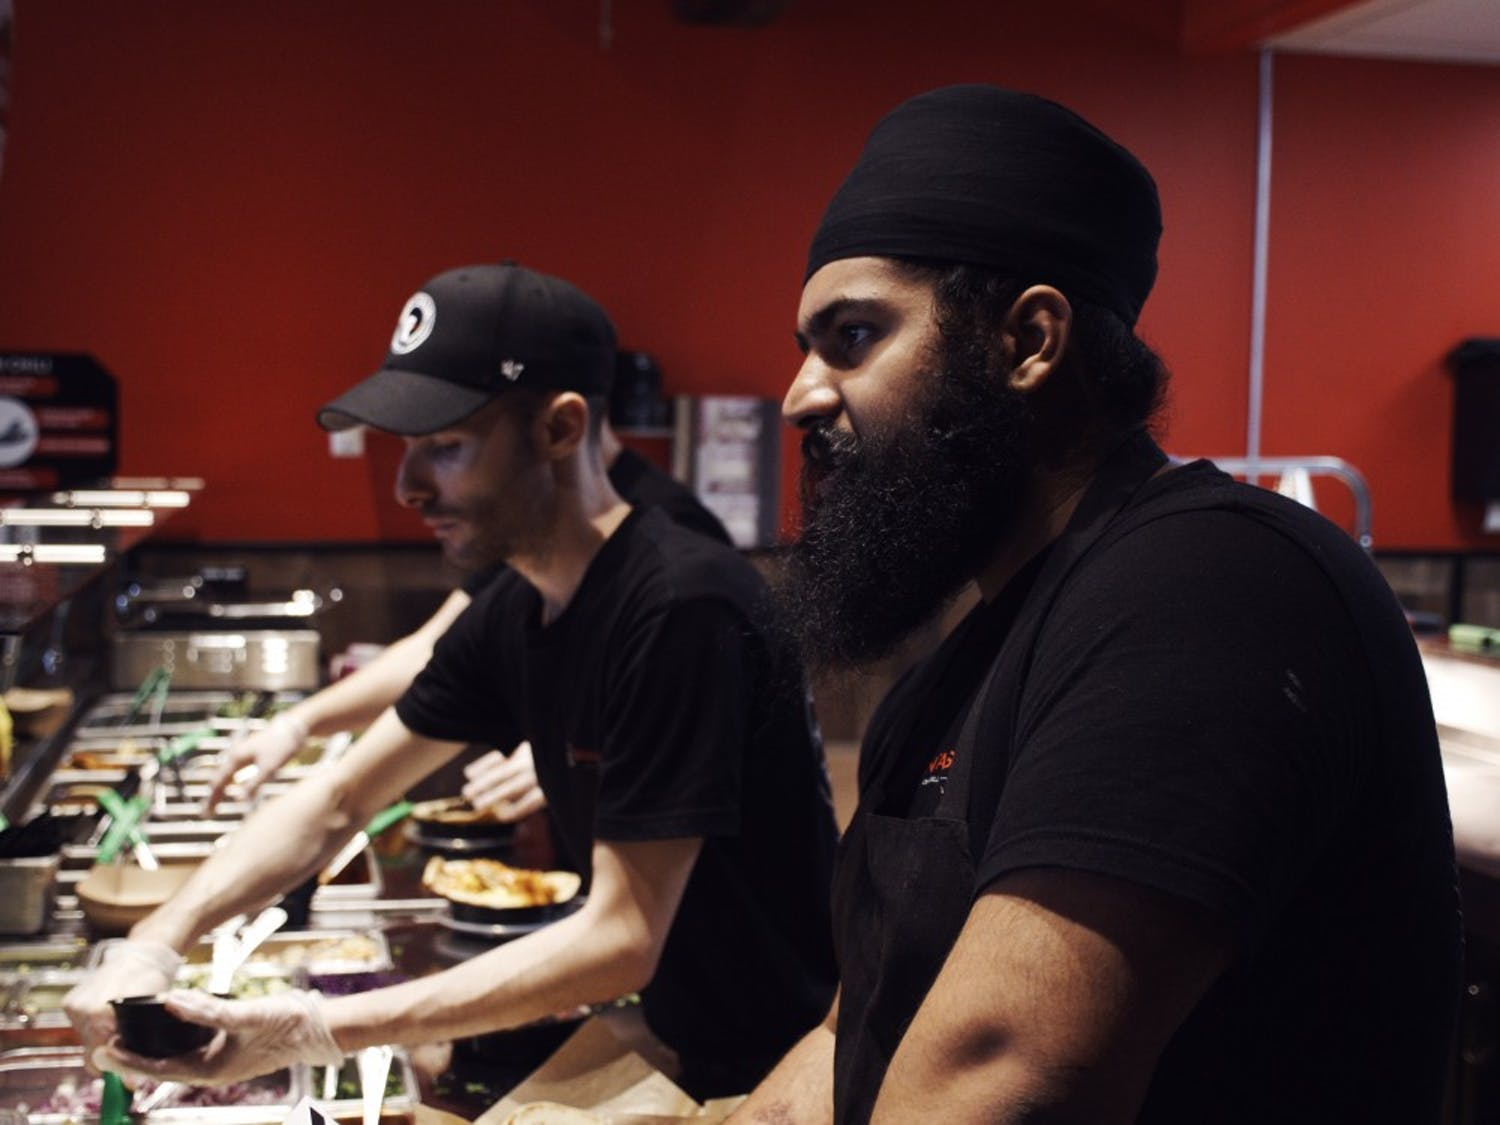 Naan-Tastic workers serving customers their unconventional Indian cuisine. The novel restaurant, which opened its doors on Friday, is owned and operated by UB alum, Aman Singh, and his brother, Ajay Singh.